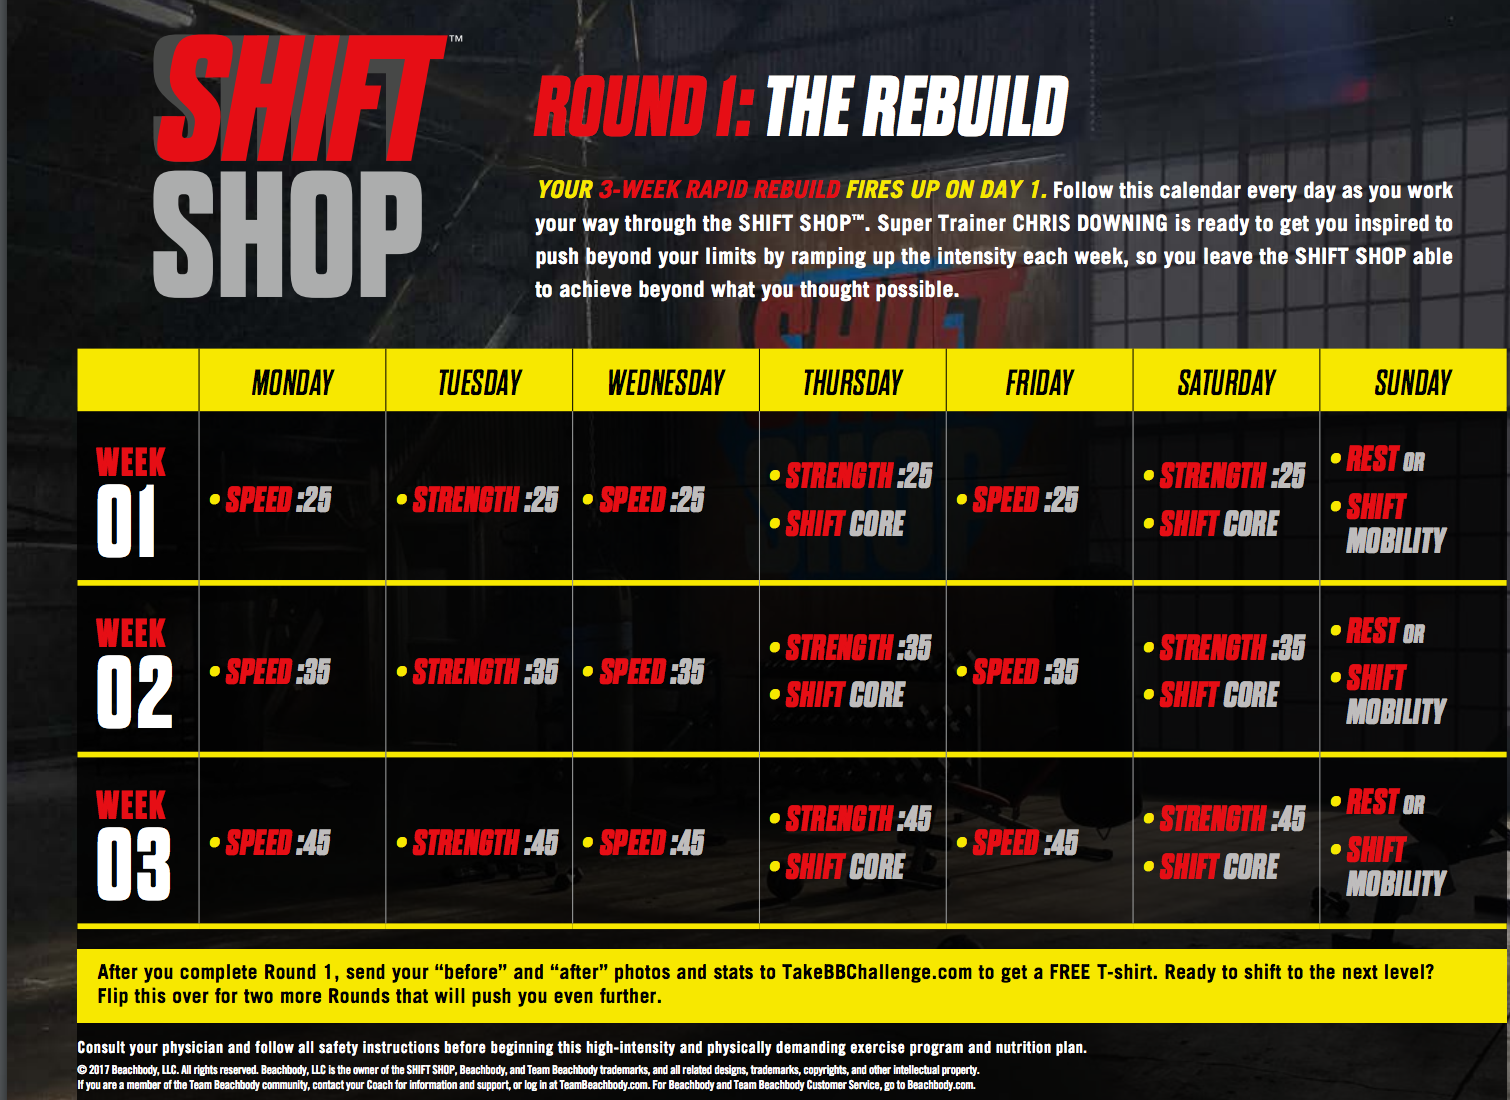 Shift Shop Workout Calendar, Week 1 Meal plan, Meal Plan A Shift Shop, Melanie Mitro